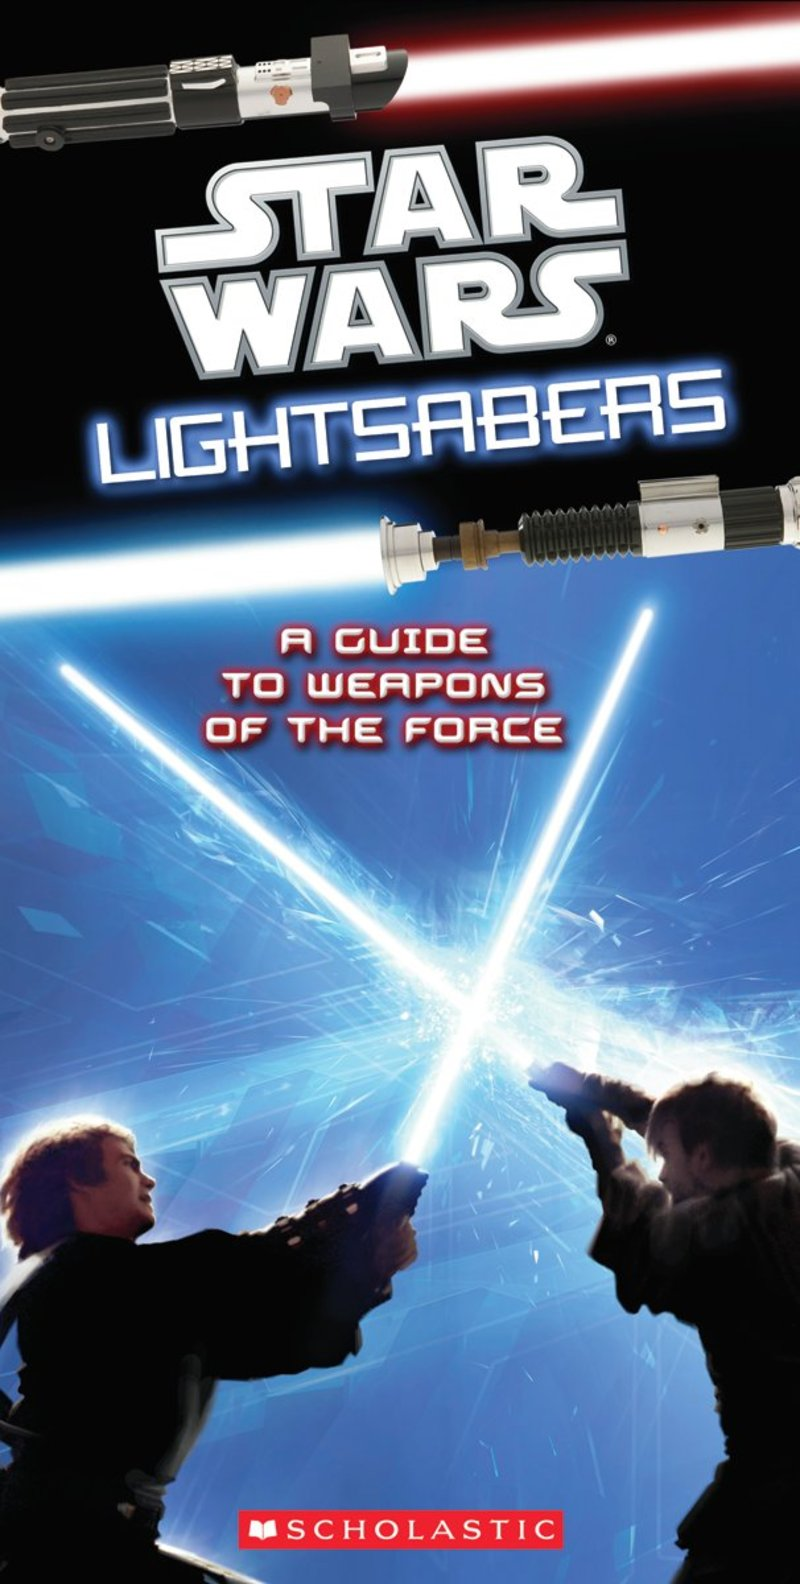 Star Wars: Lightsabers: A Guide to Weapons of the Force